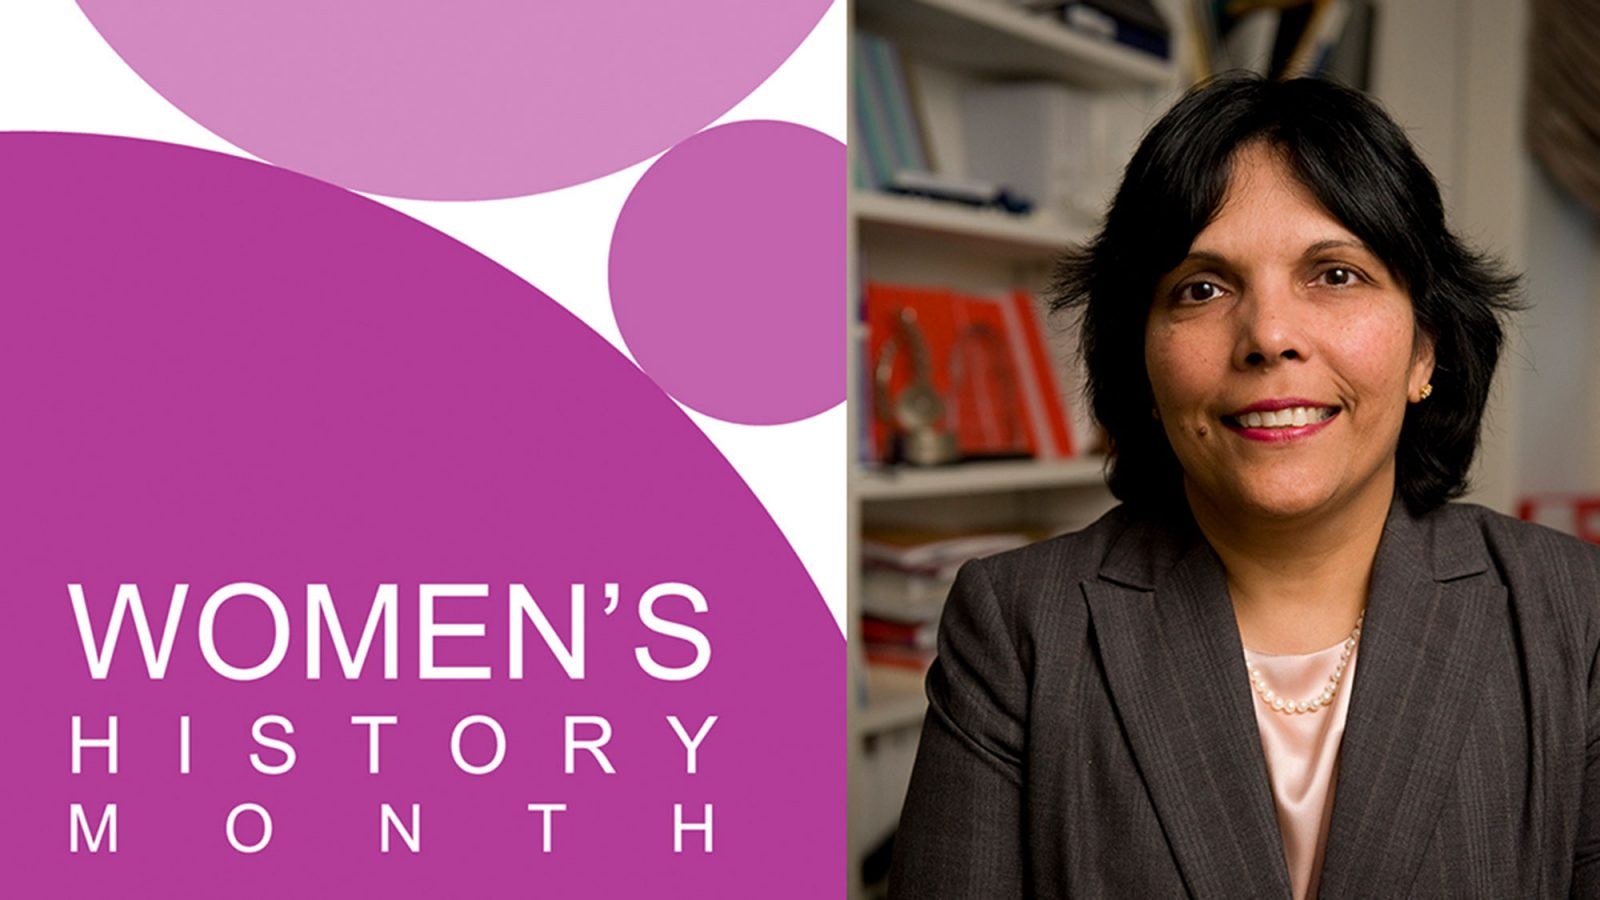 Reena Aggarwaal shown with a Women's History month background.